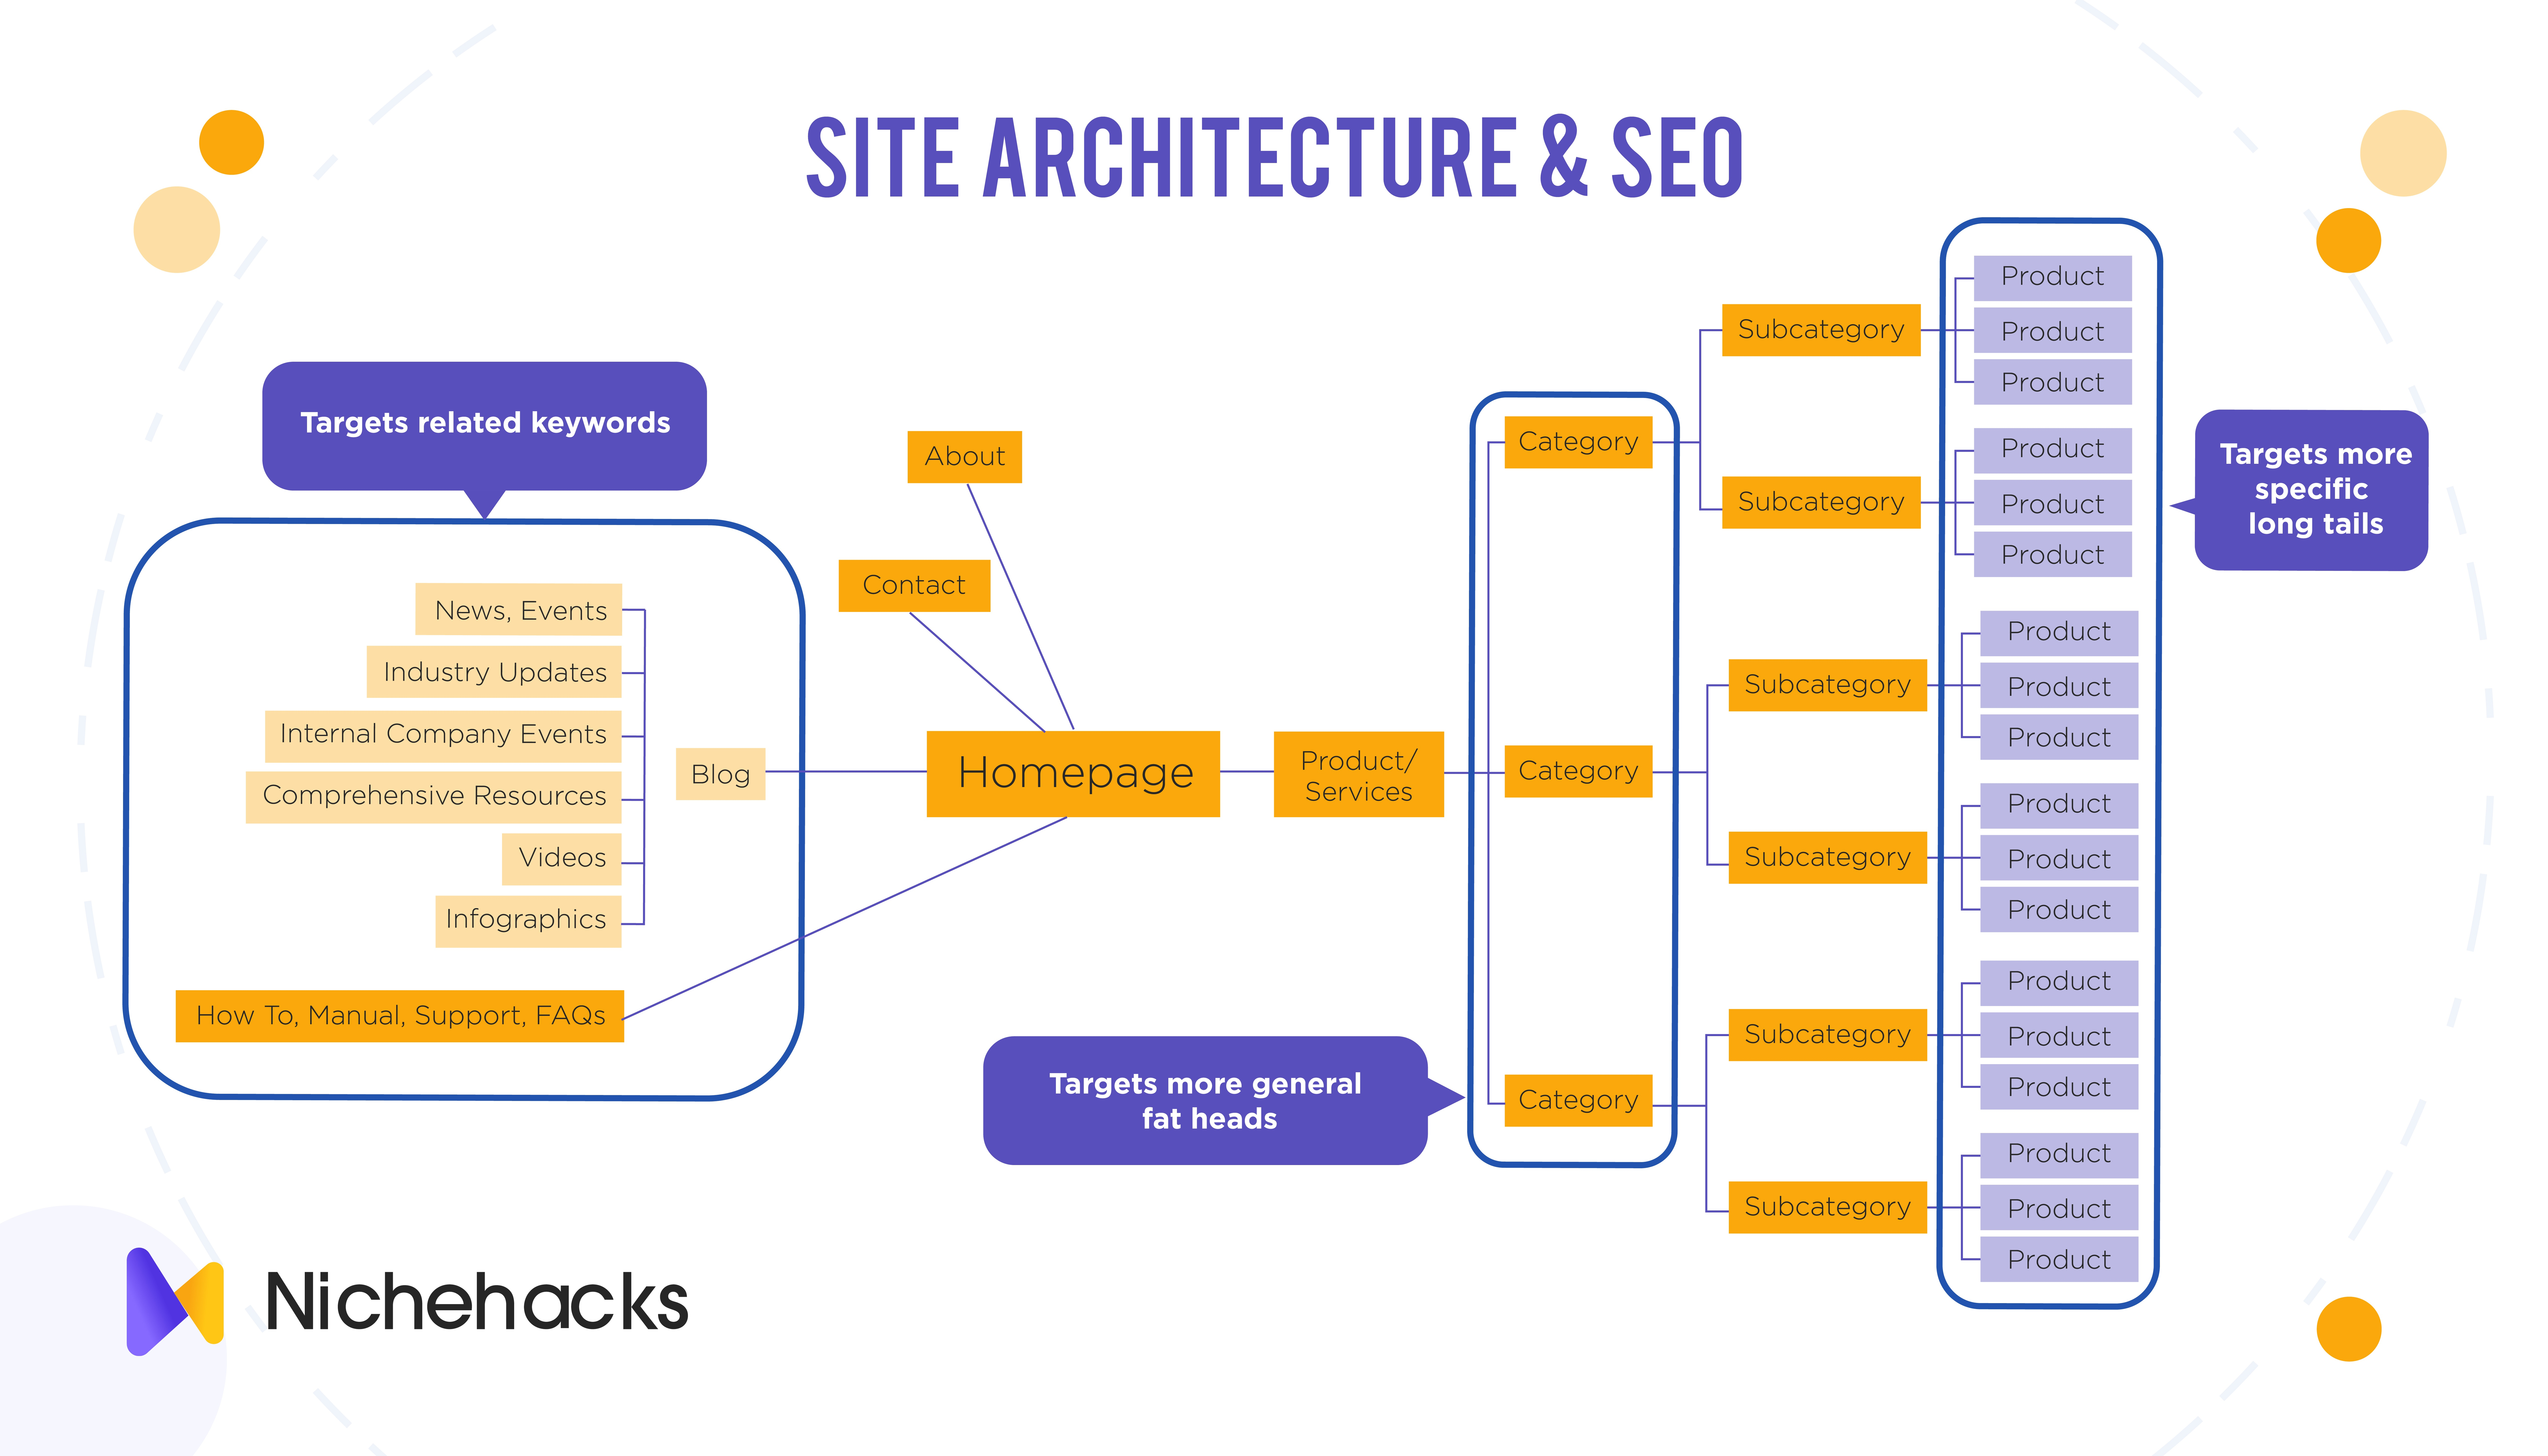 Diagram showing site architecture and SEO